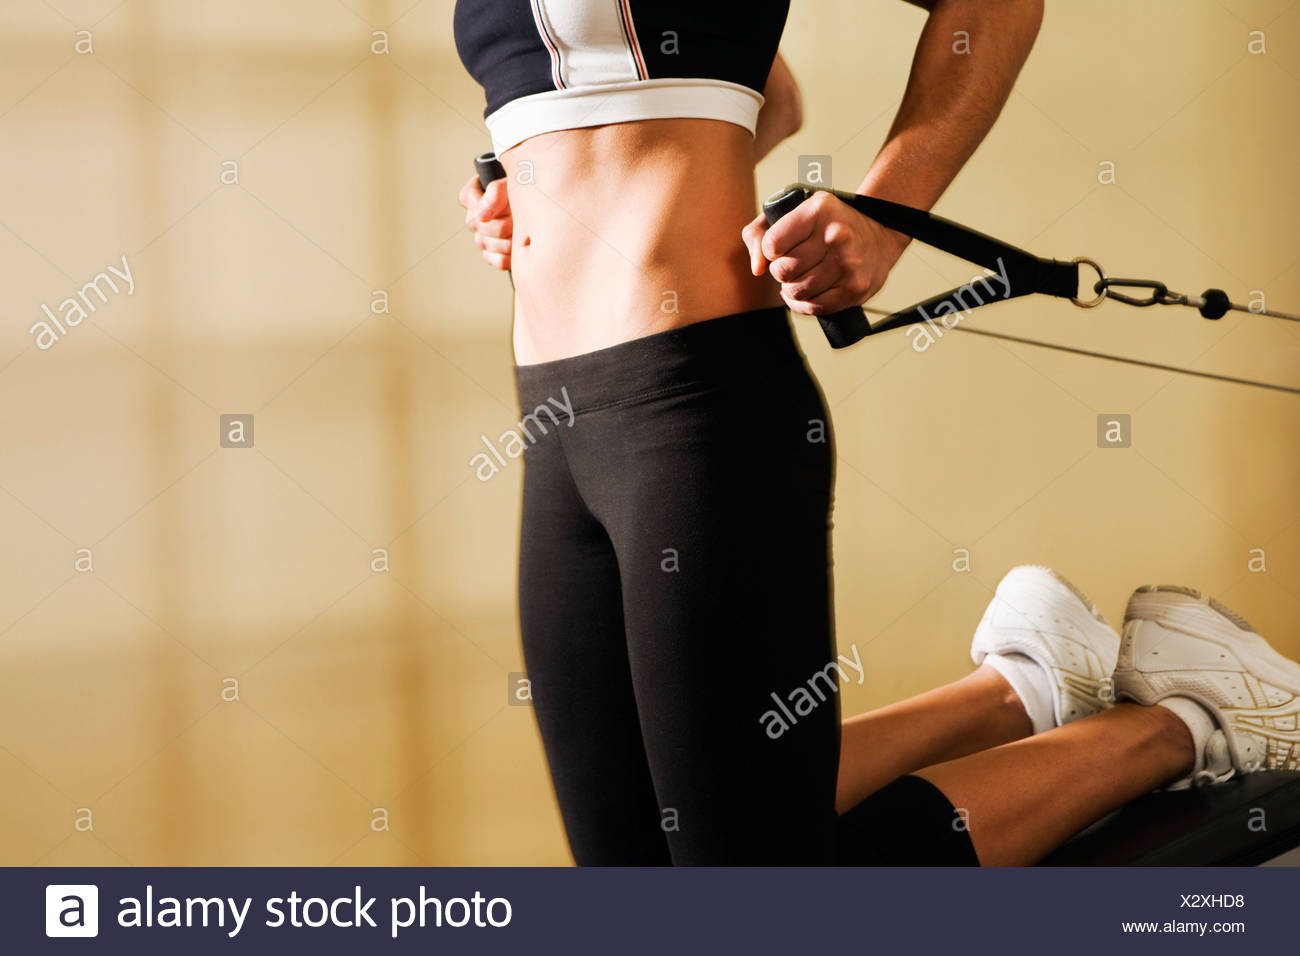 Torse Shot of Young Woman in Gym Formation Photo Stock